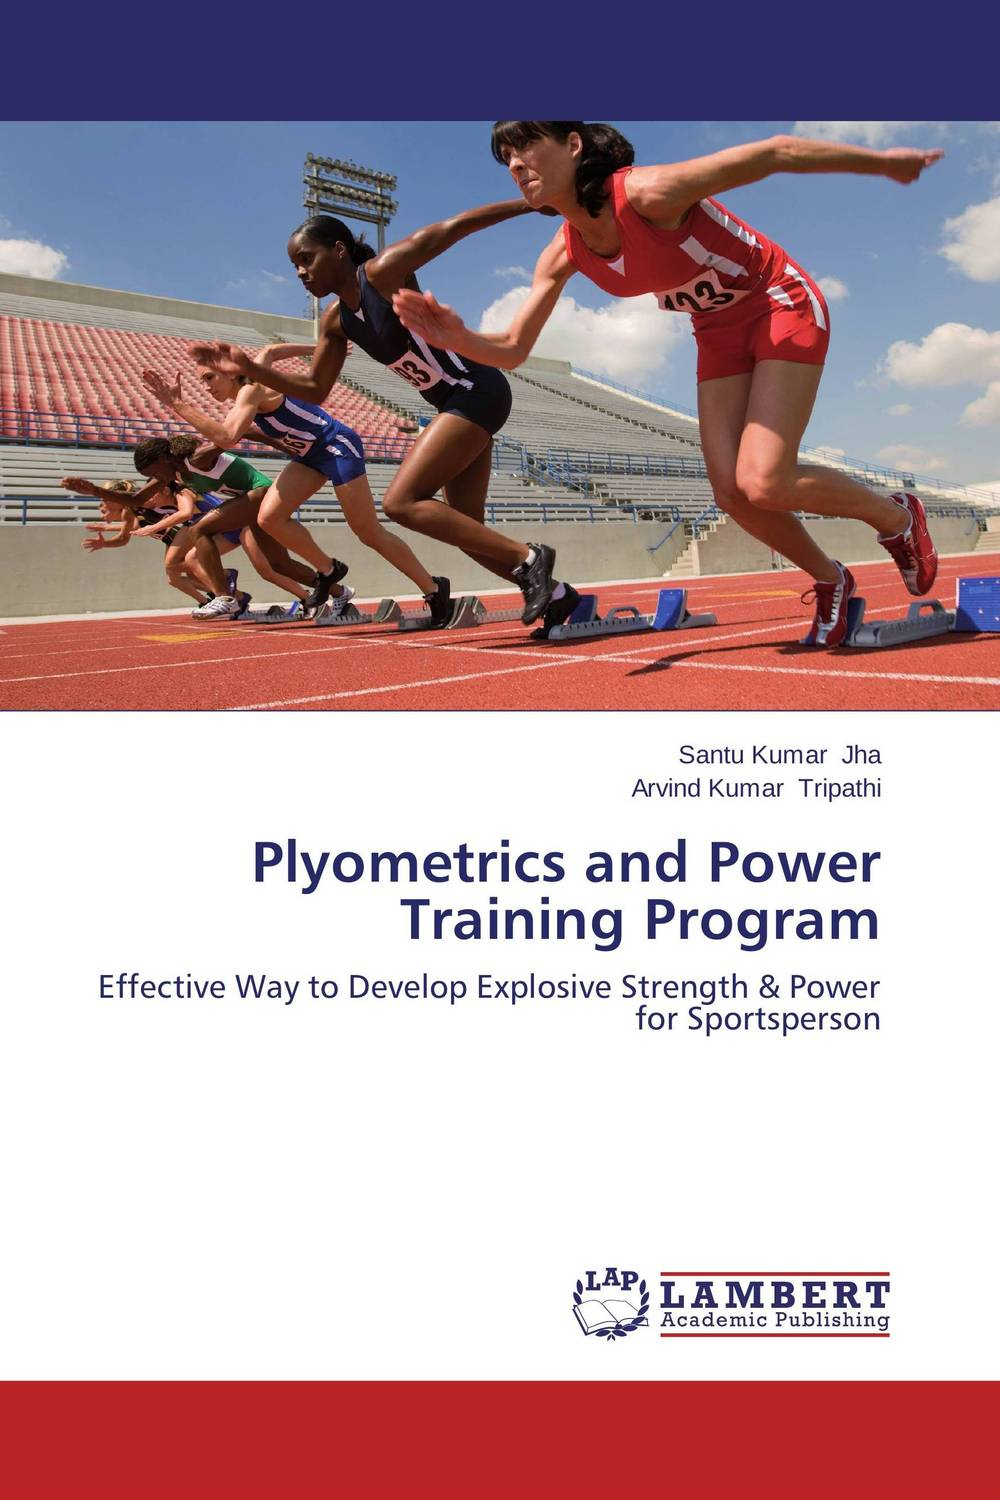 Plyometrics and Power Training Program